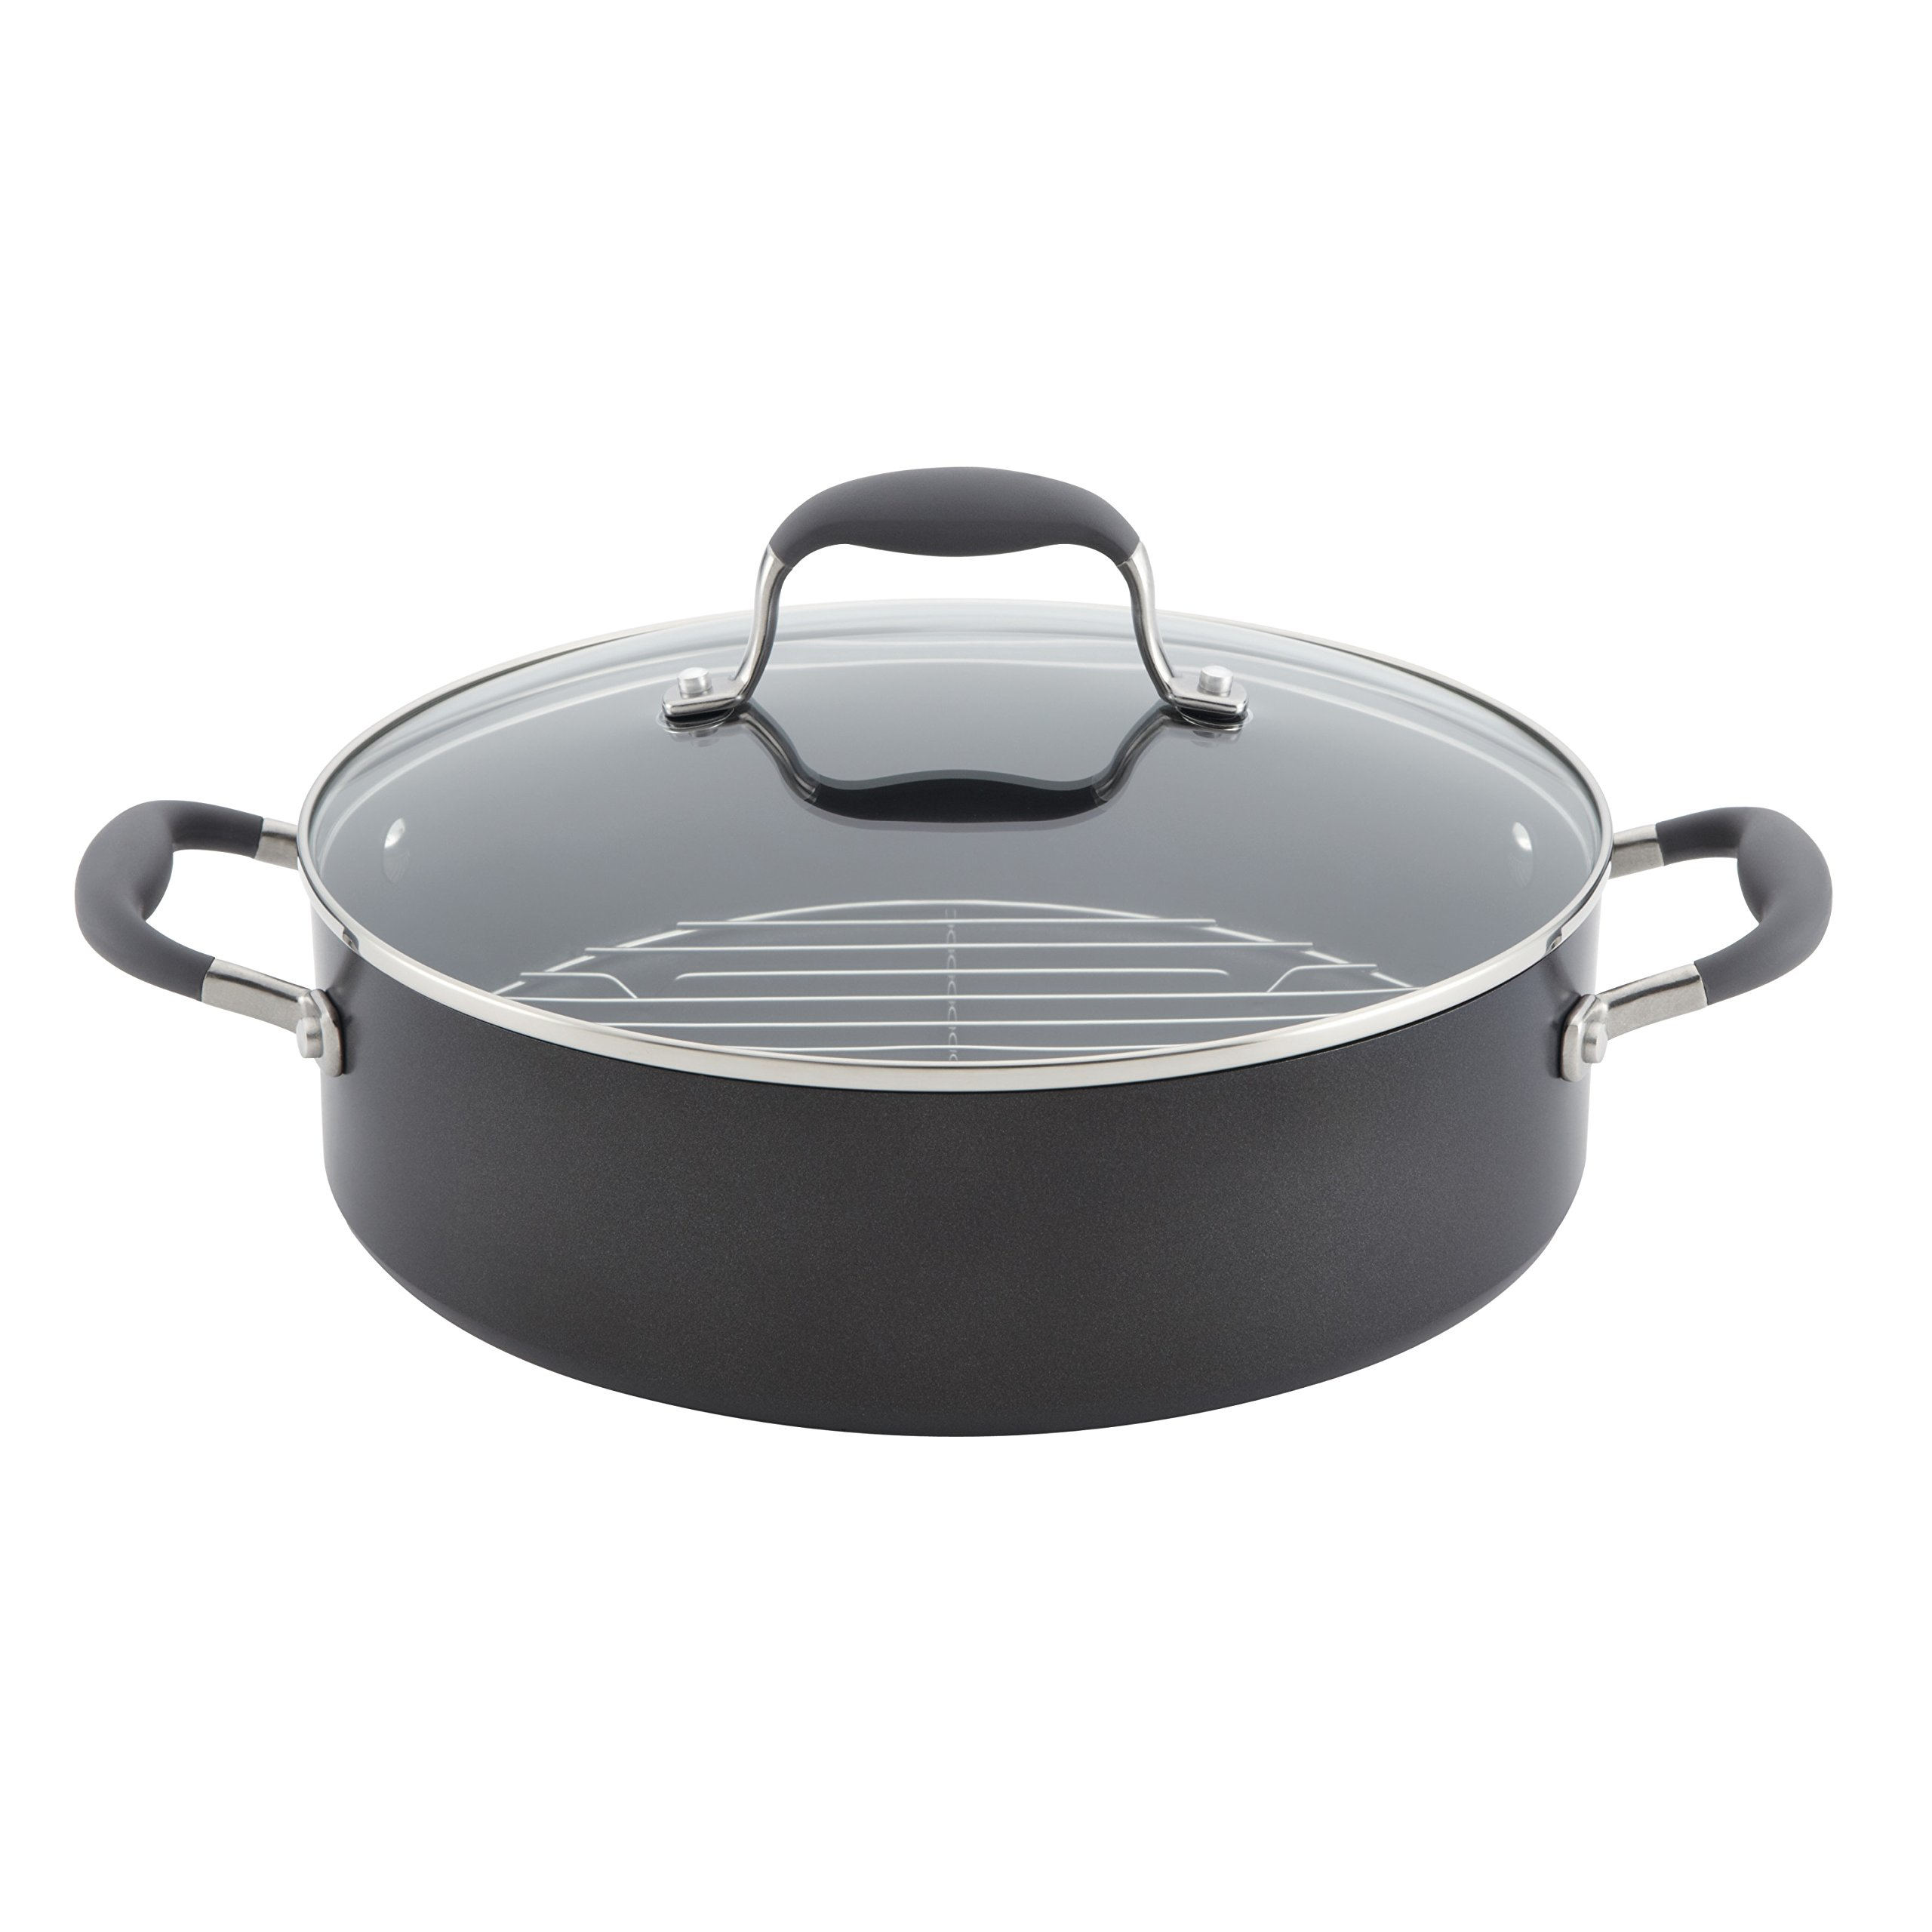 Anolon Advanced Hard-Anodized Nonstick 5.5-Quart Covered Dutch Oven with Rack, Gray by Anolon